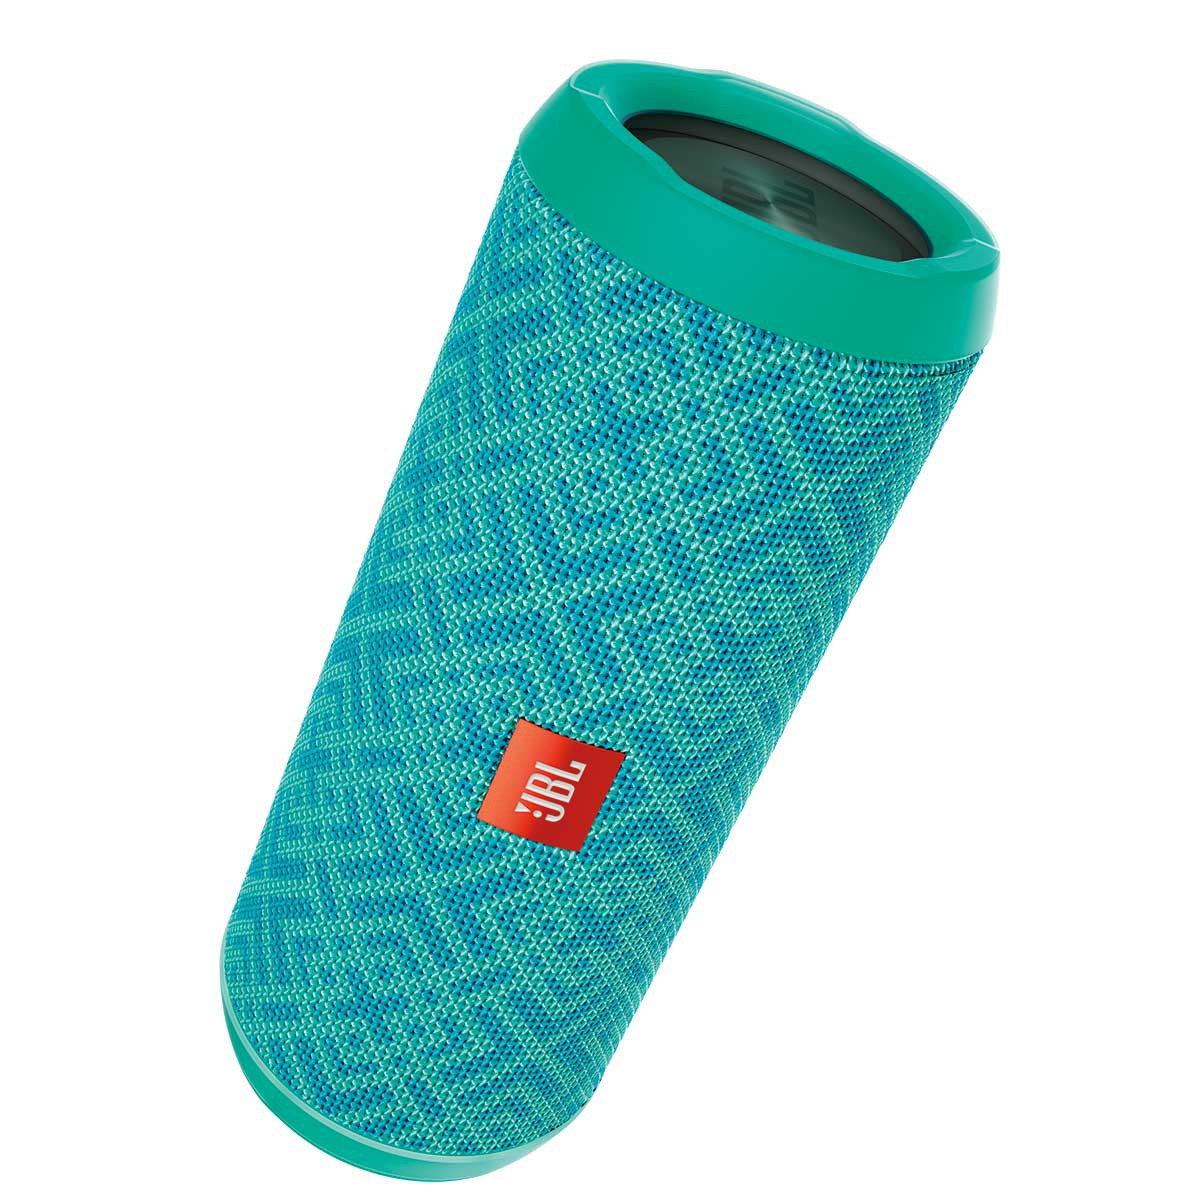 Harman Audio Offer : Buy JBL FLIP3 Wireless Portable Speaker (Special Edition) at Rs. 6,490